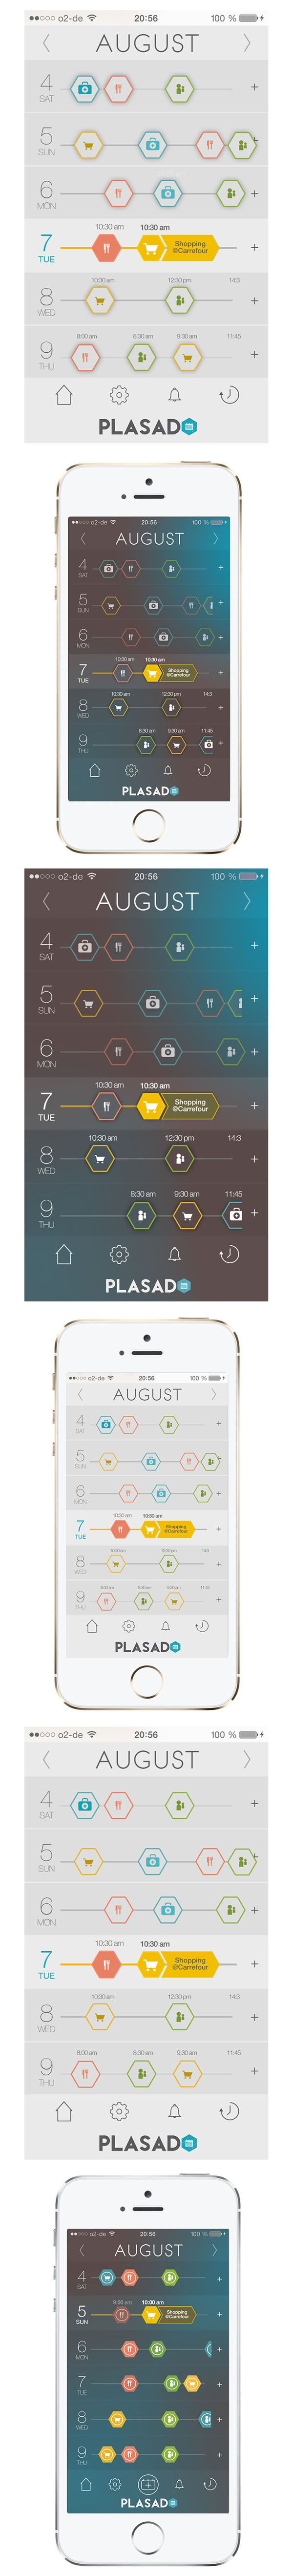 Mobile UI Design Inspiration #mobile #ui #design pinterest.com/alextcsung/